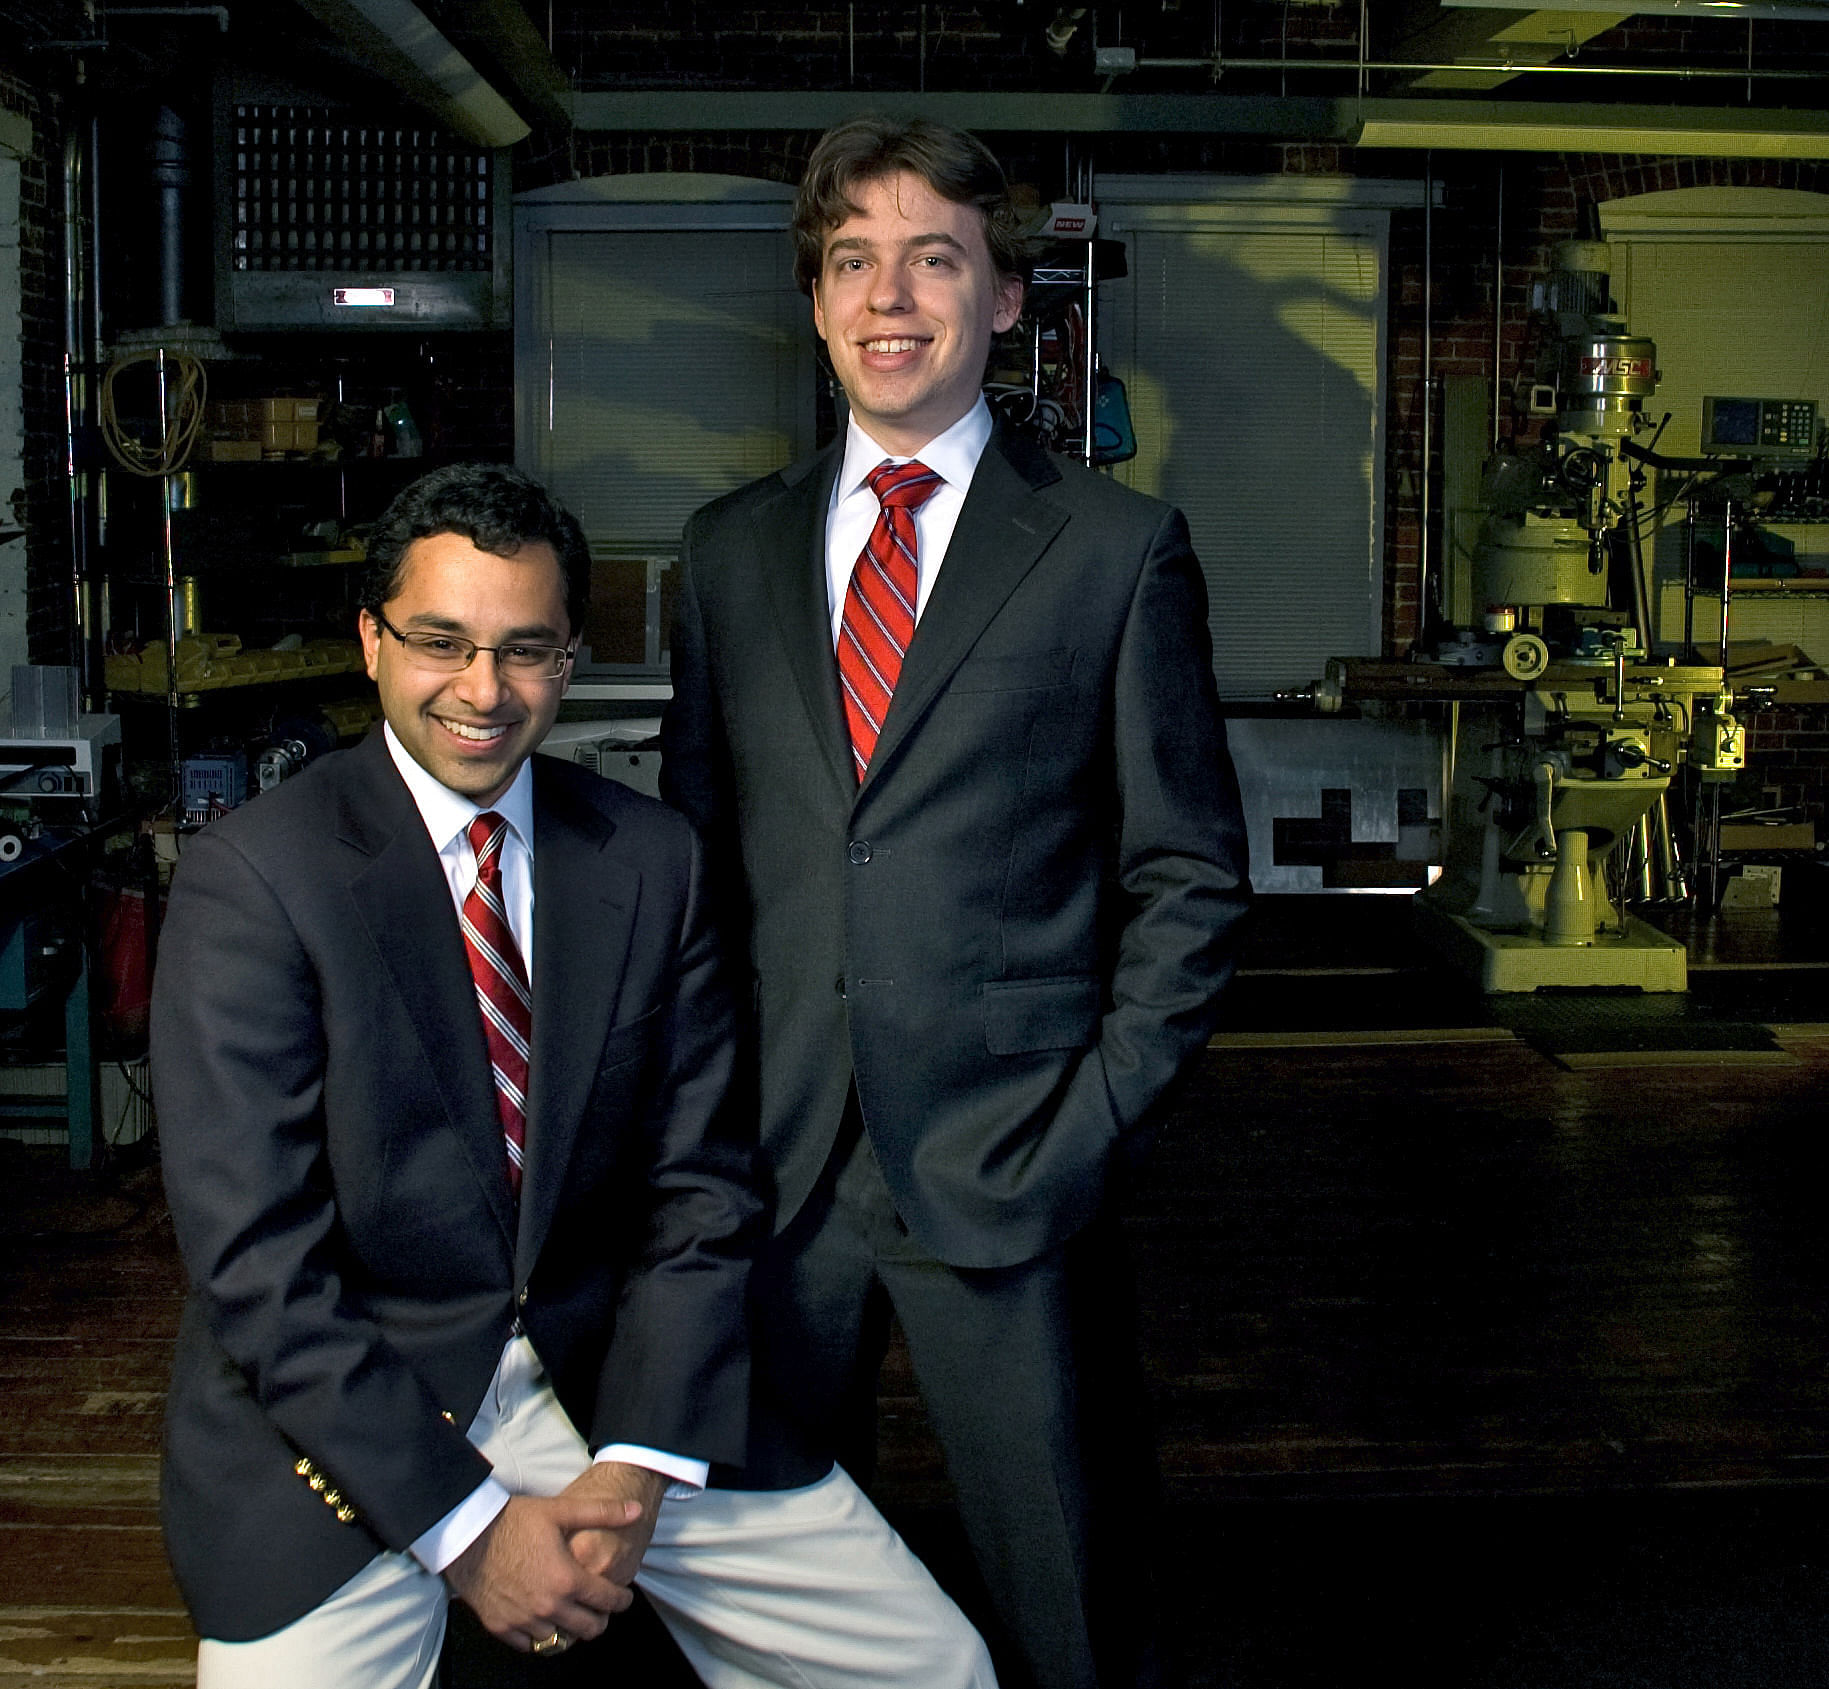 Founders of Levant Power:  Left Shakeel Avadhvany, Right Zack Anderson. Photo credit: Levant Power.